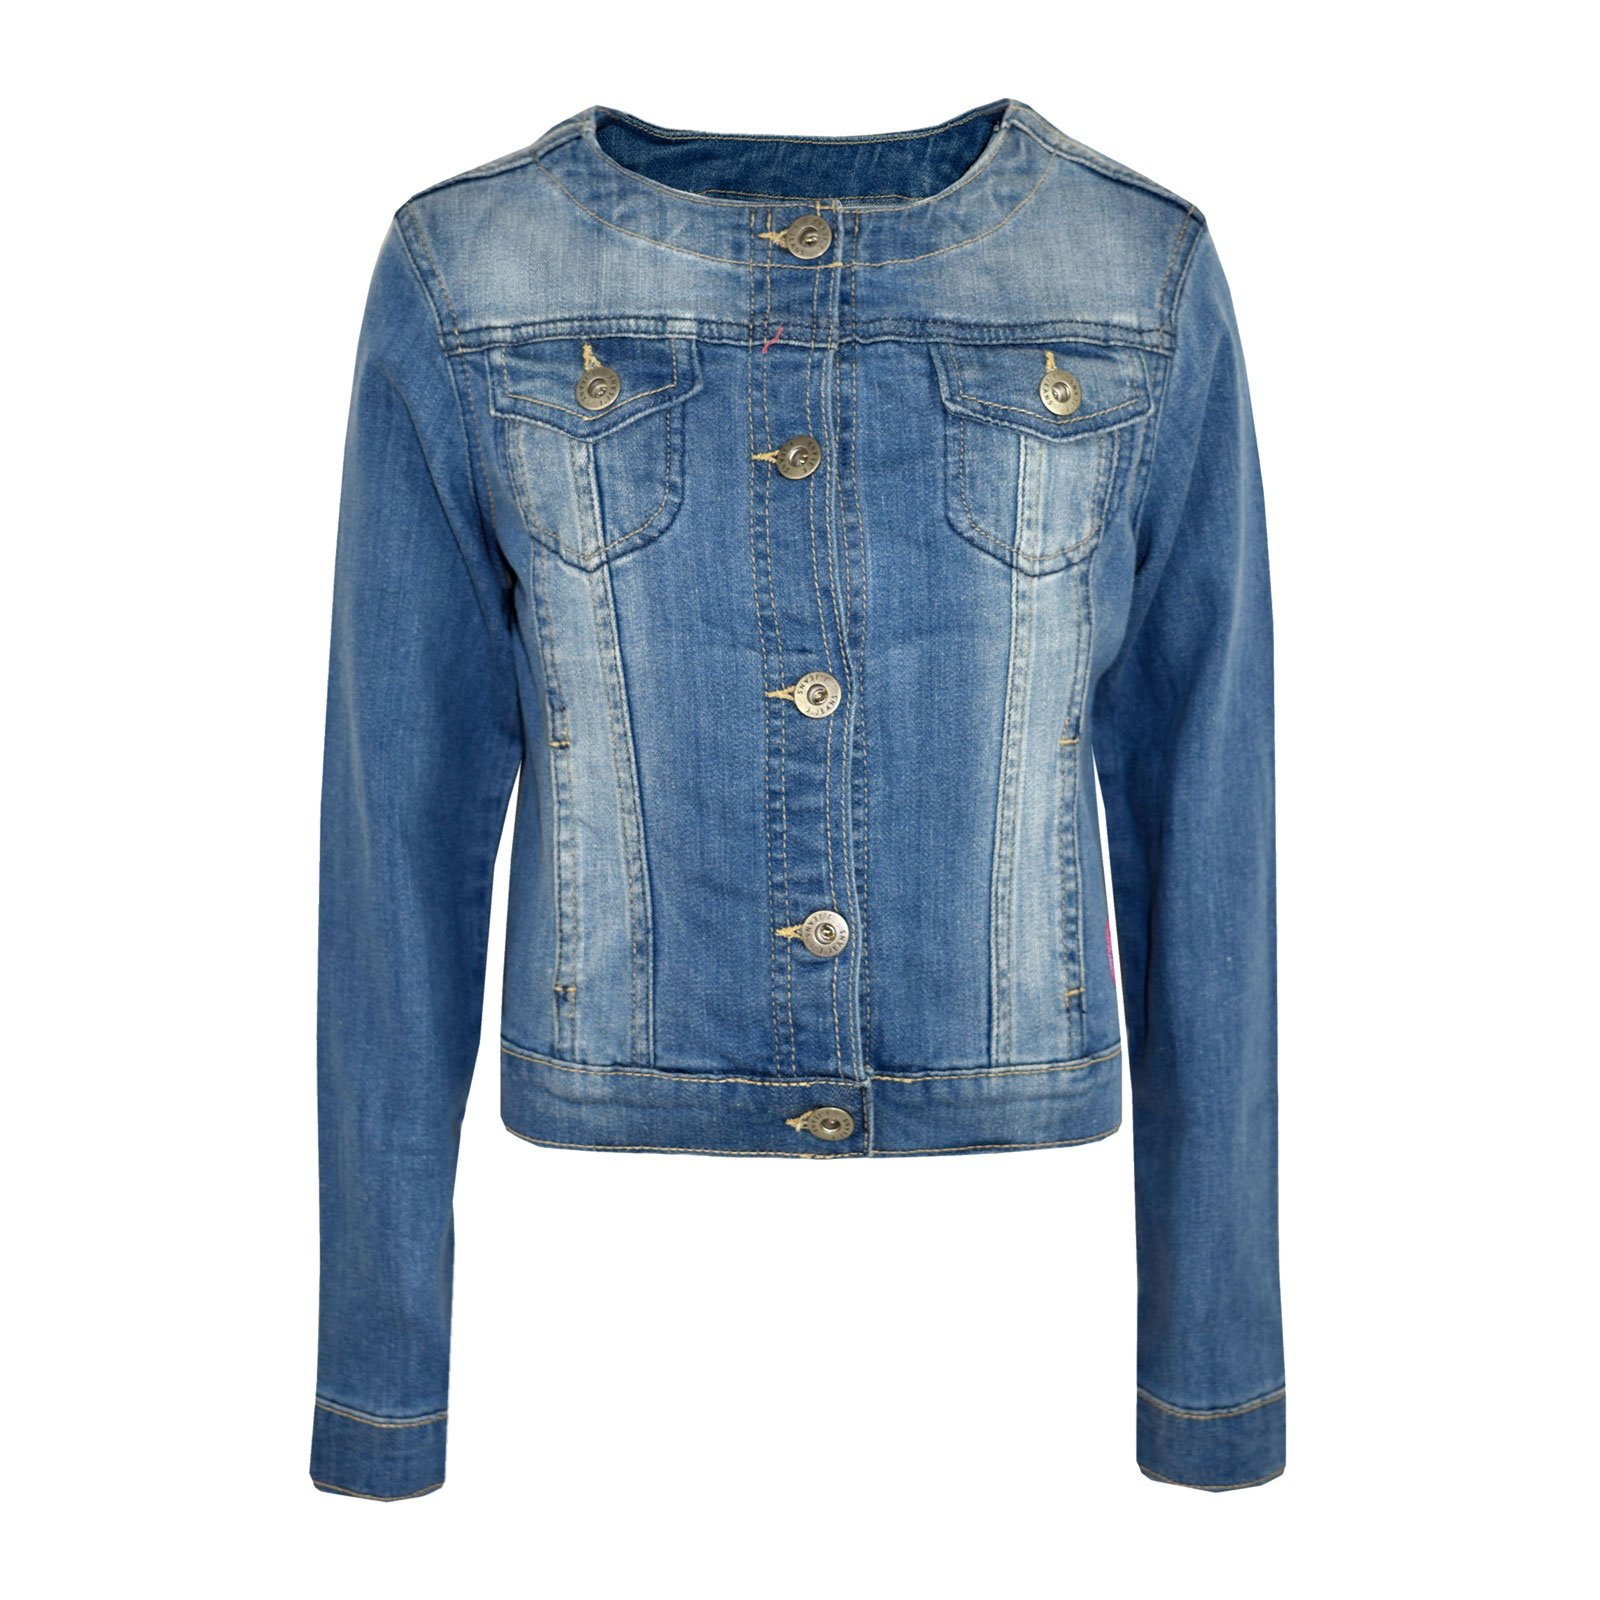 Kids Girls Jacket Kids Denim Style Stylish Fashion Trendy Jacket Age 3-16 Years by a2z4kids